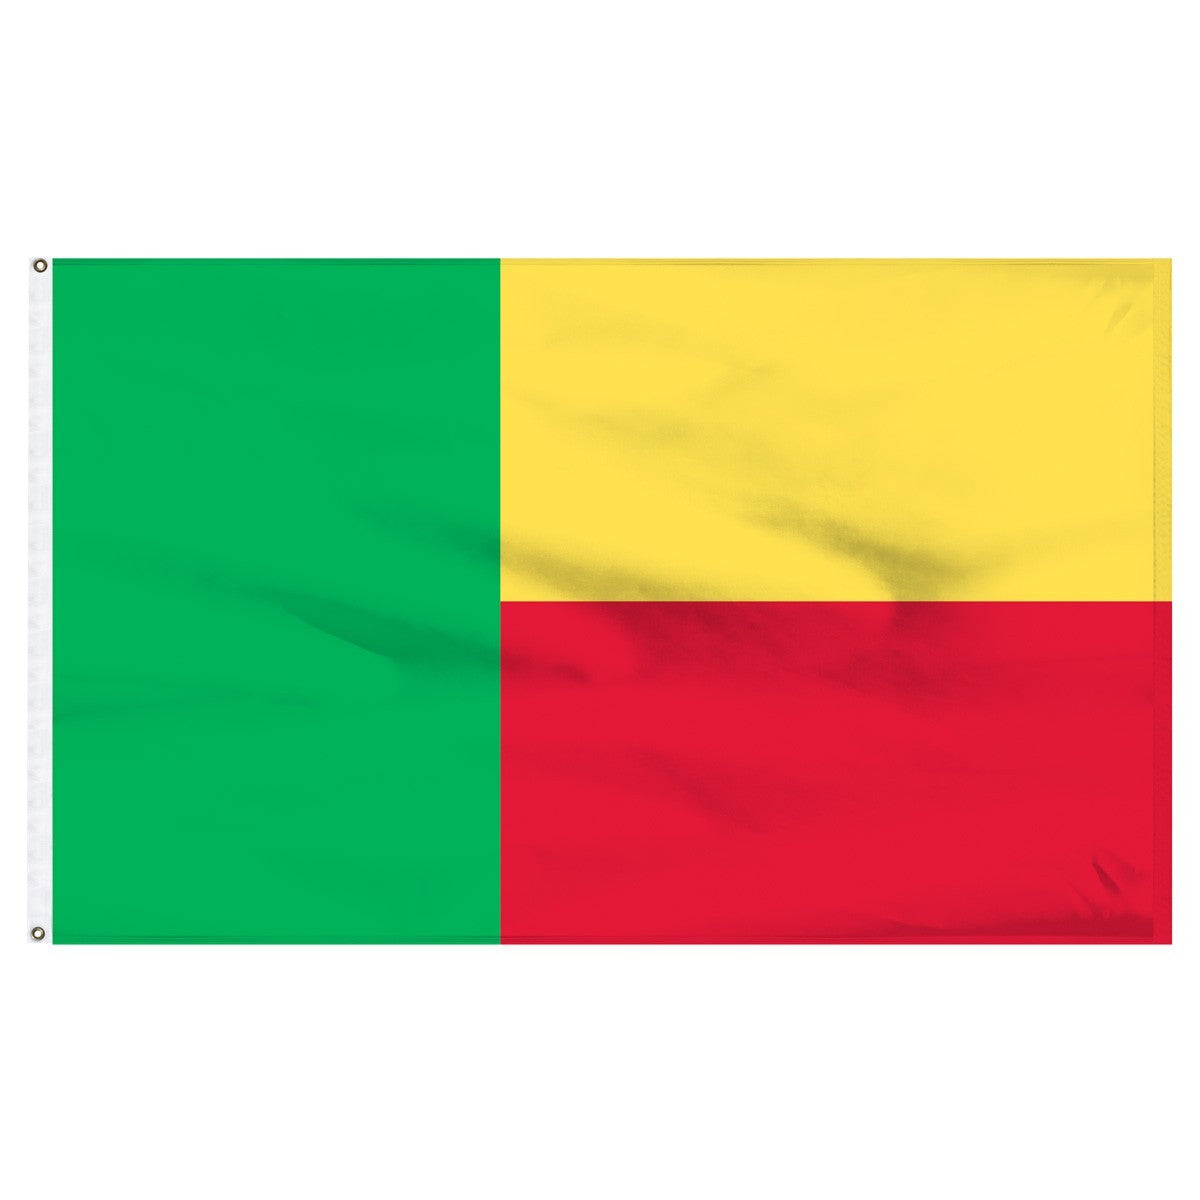 Benin 2' x 3' Outdoor Nylon Country Flag